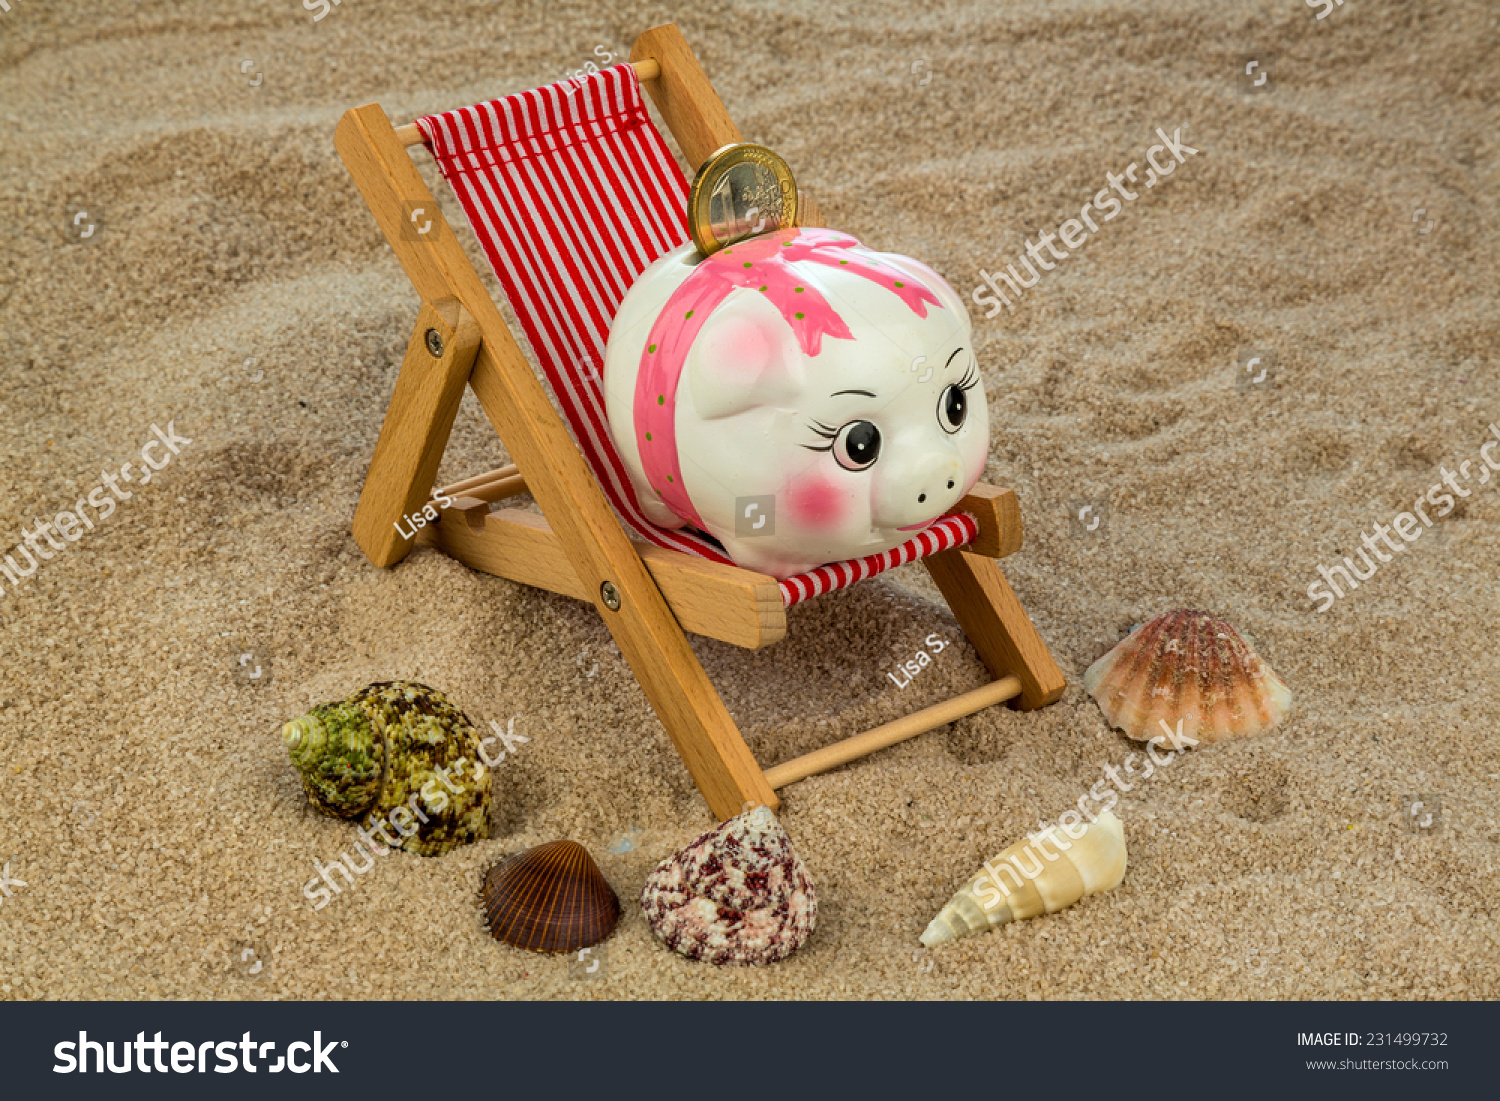 Deck chair euro currency on sandy stock photo 231499732 shutterstock deck chair with euro currency on the sandy beach symbol photo for costs in travel buycottarizona Choice Image